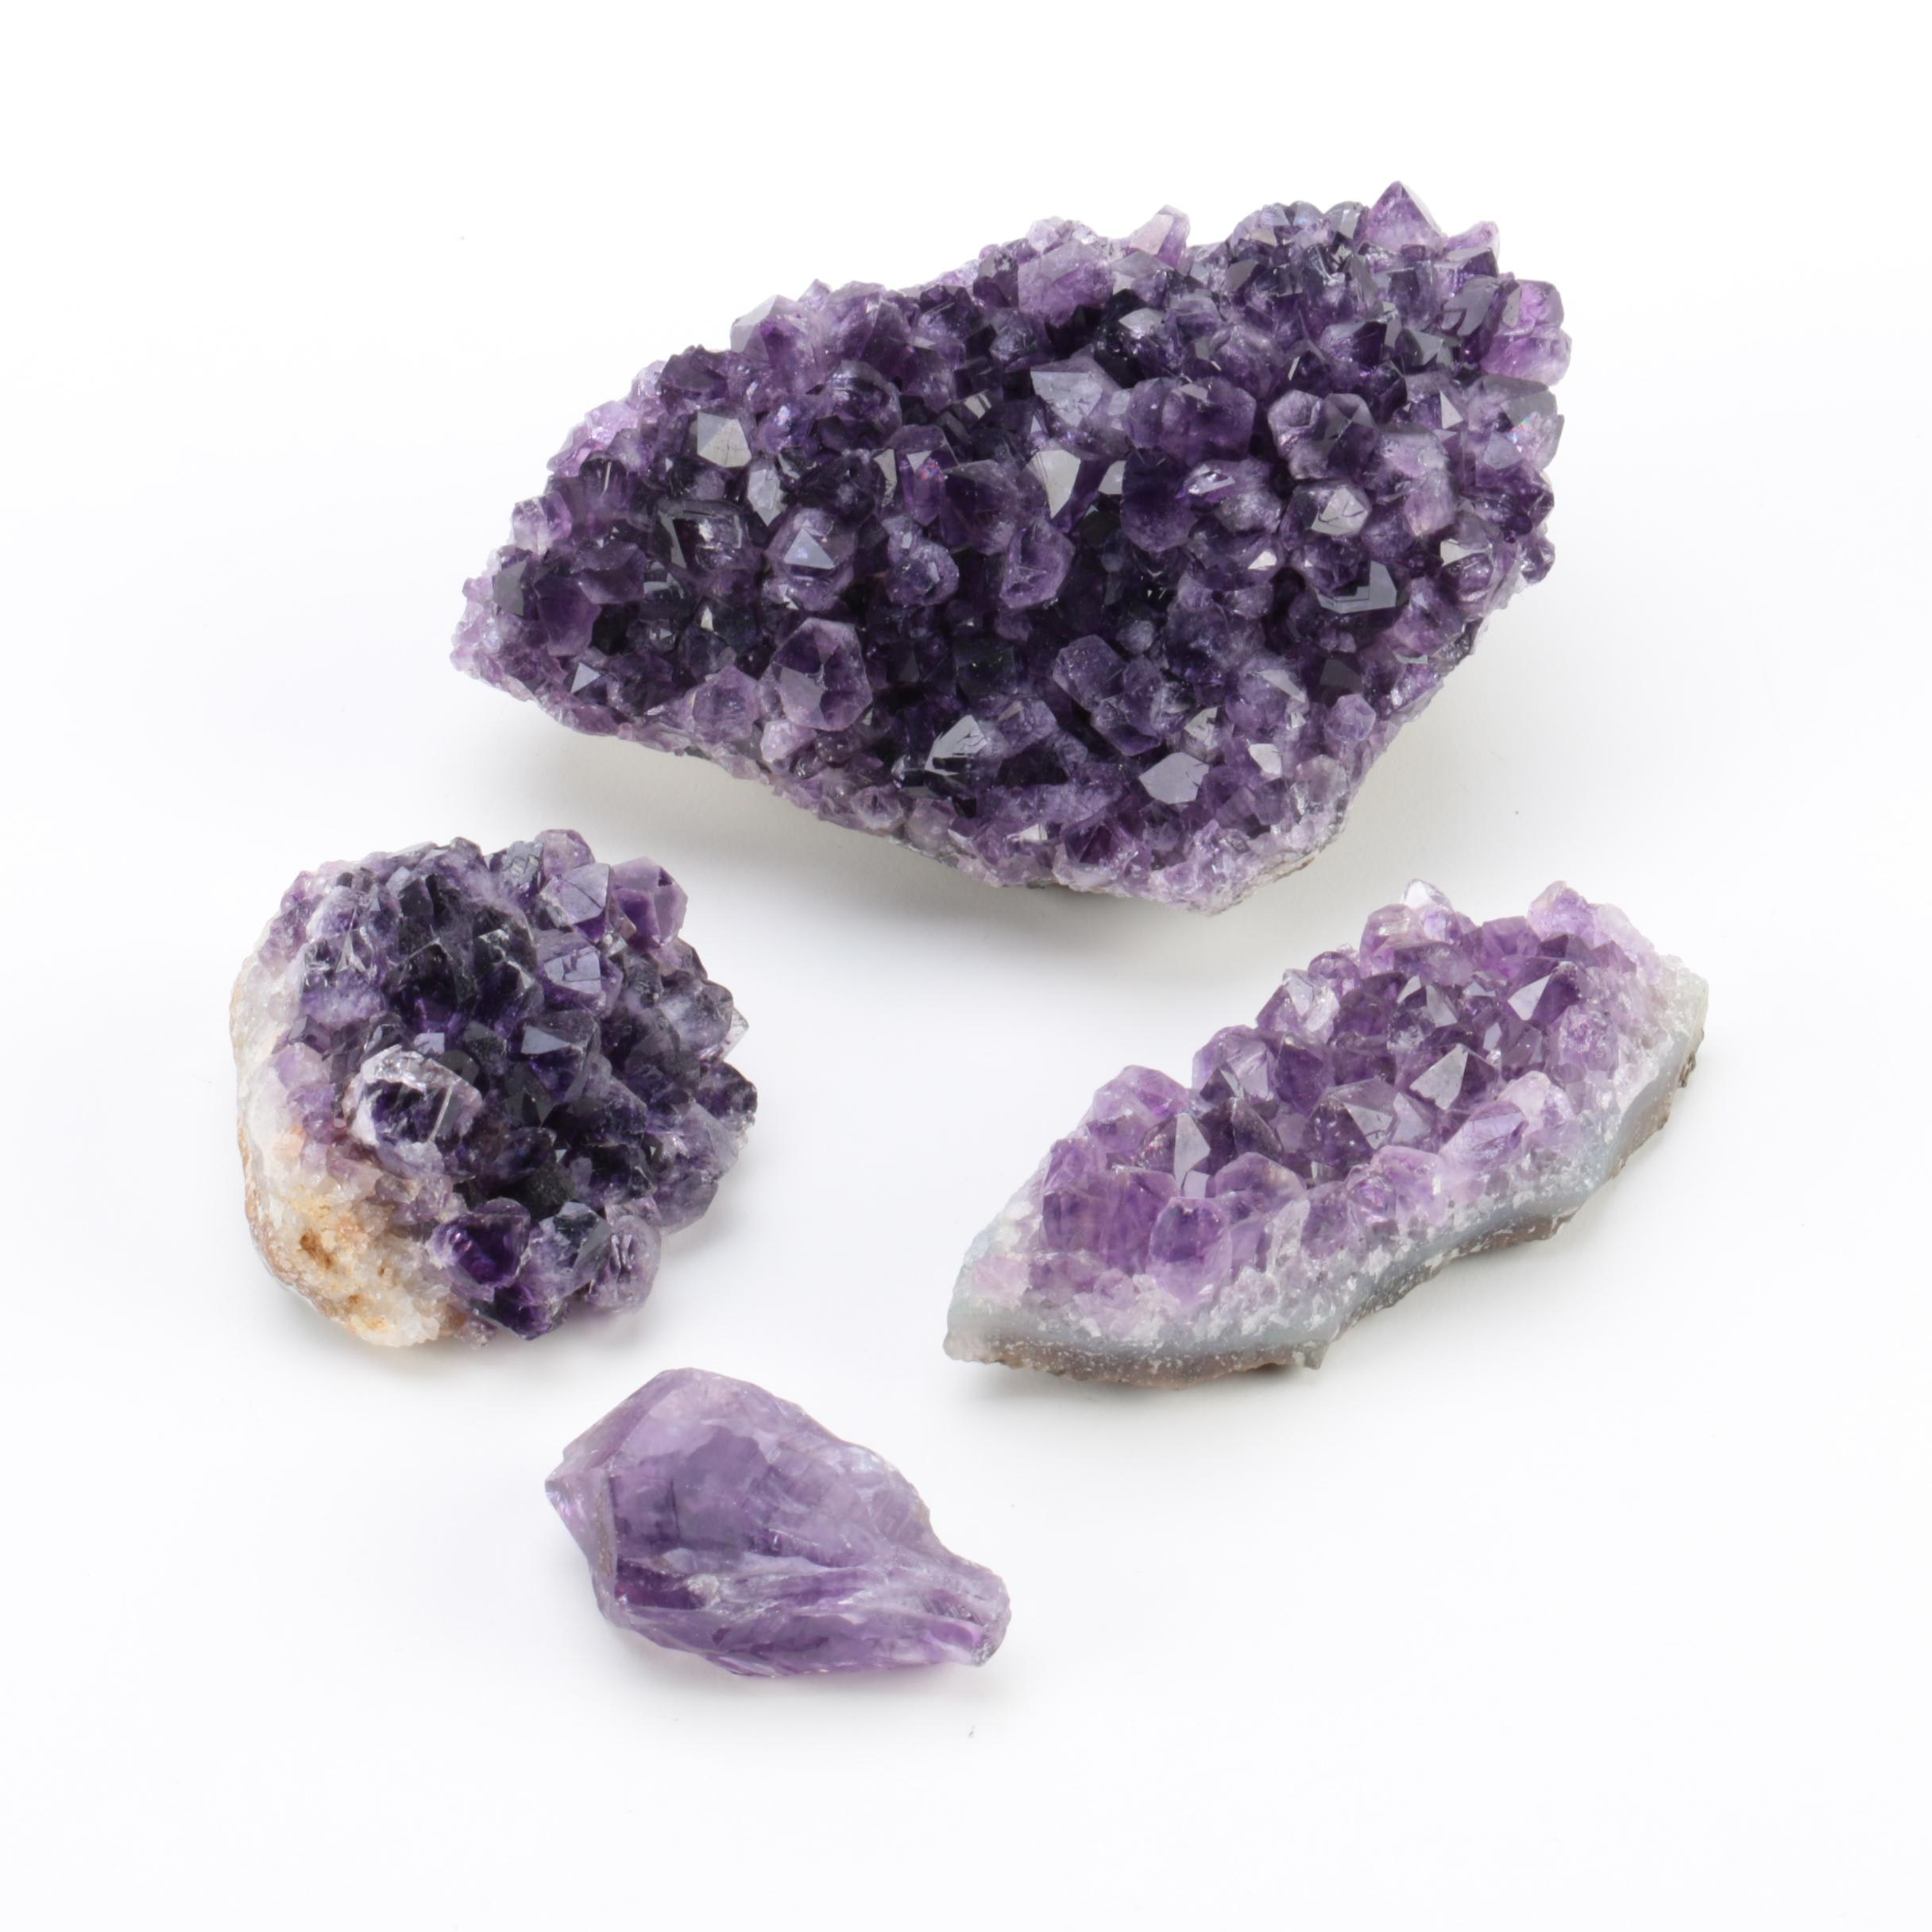 Amethyst Crystal Specimens